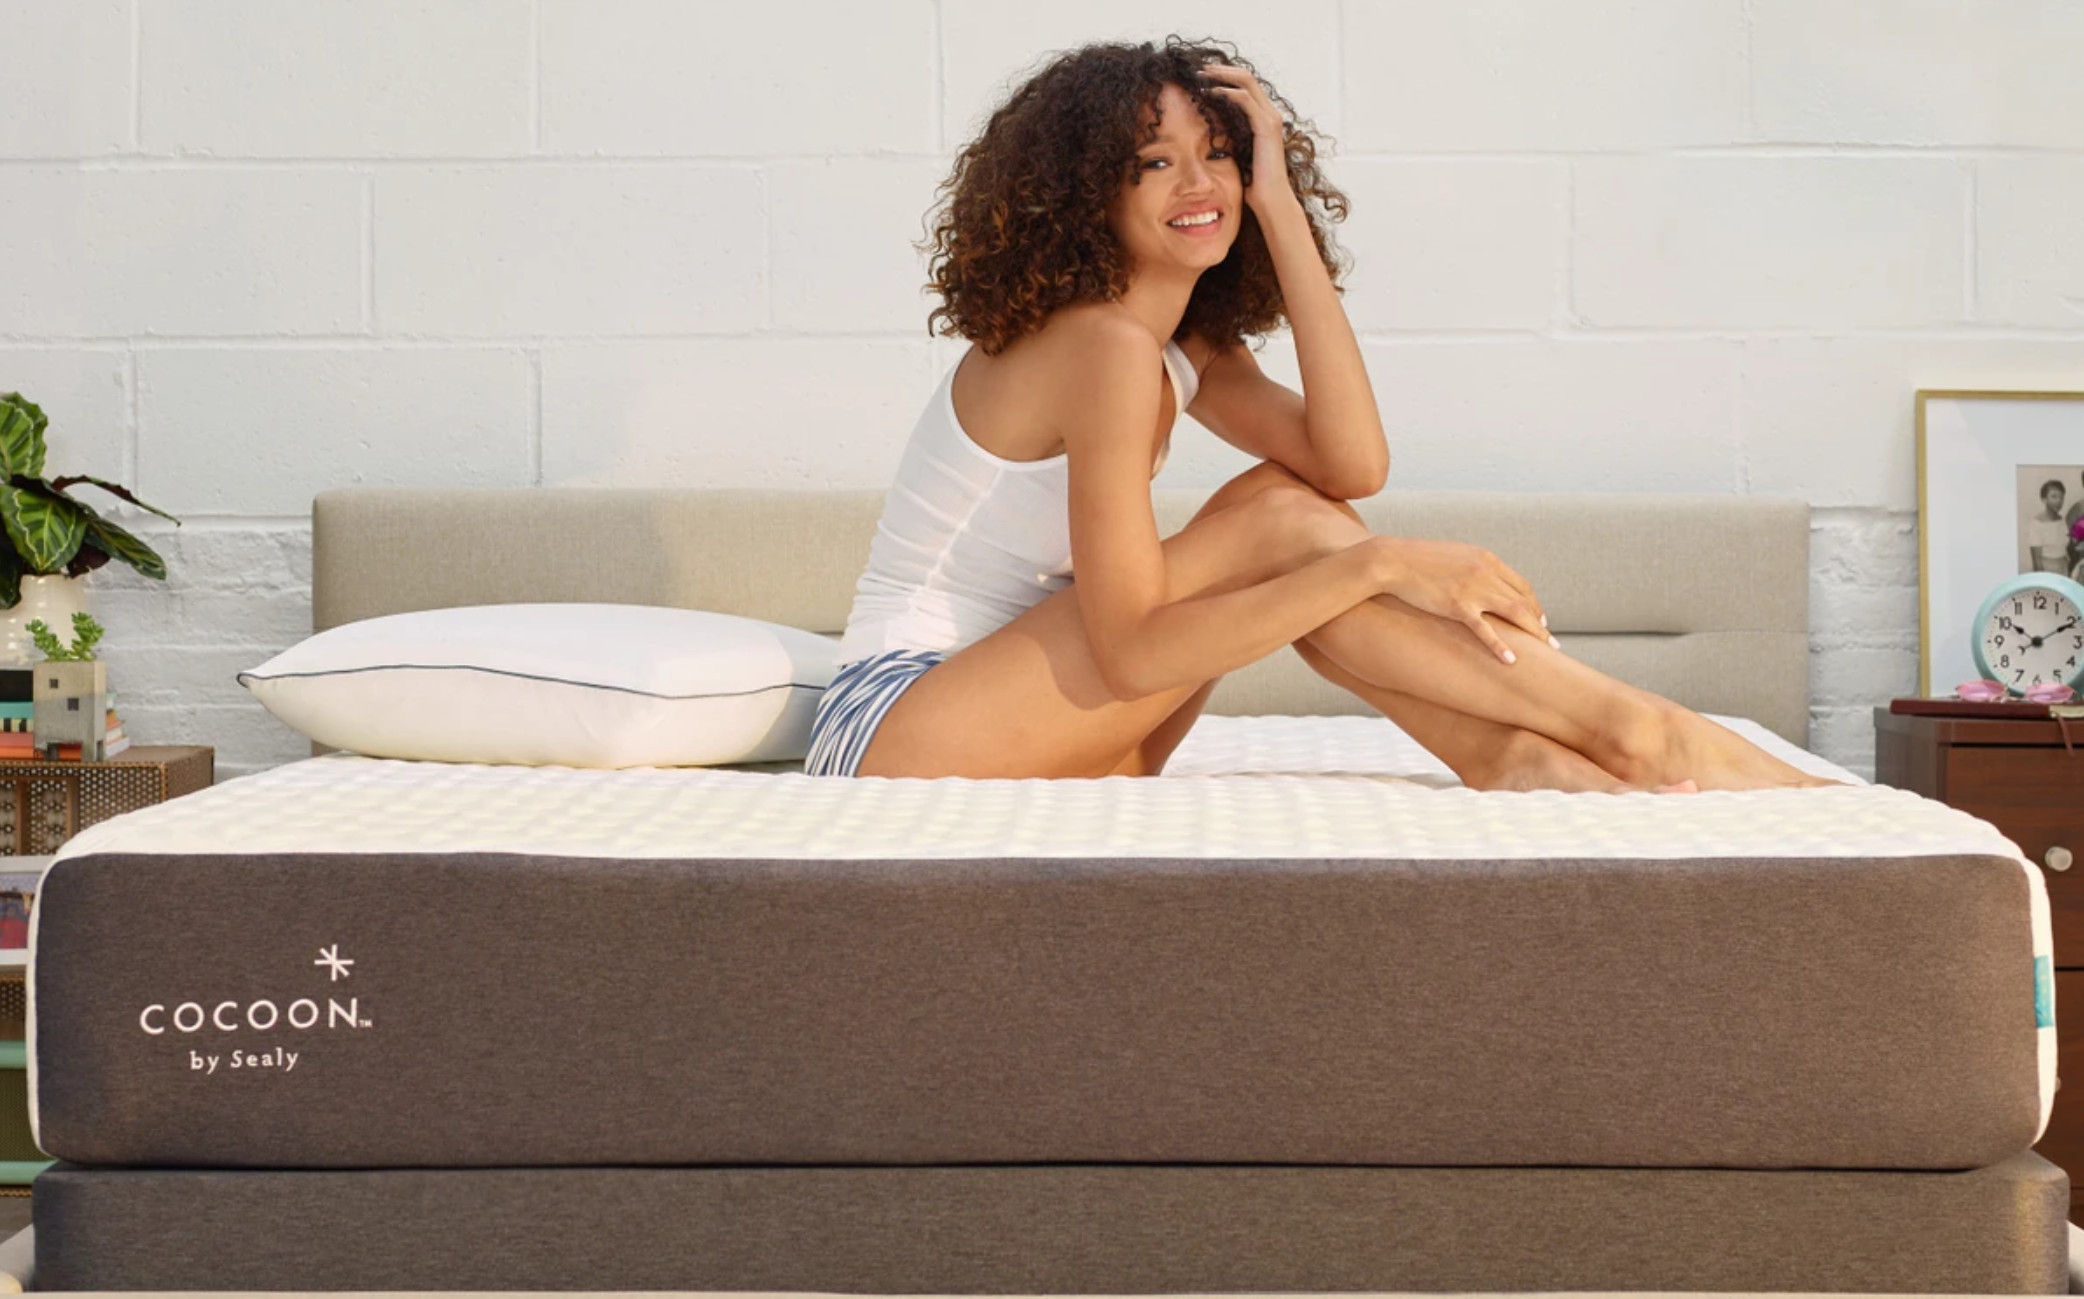 cocoon memory foam mattress